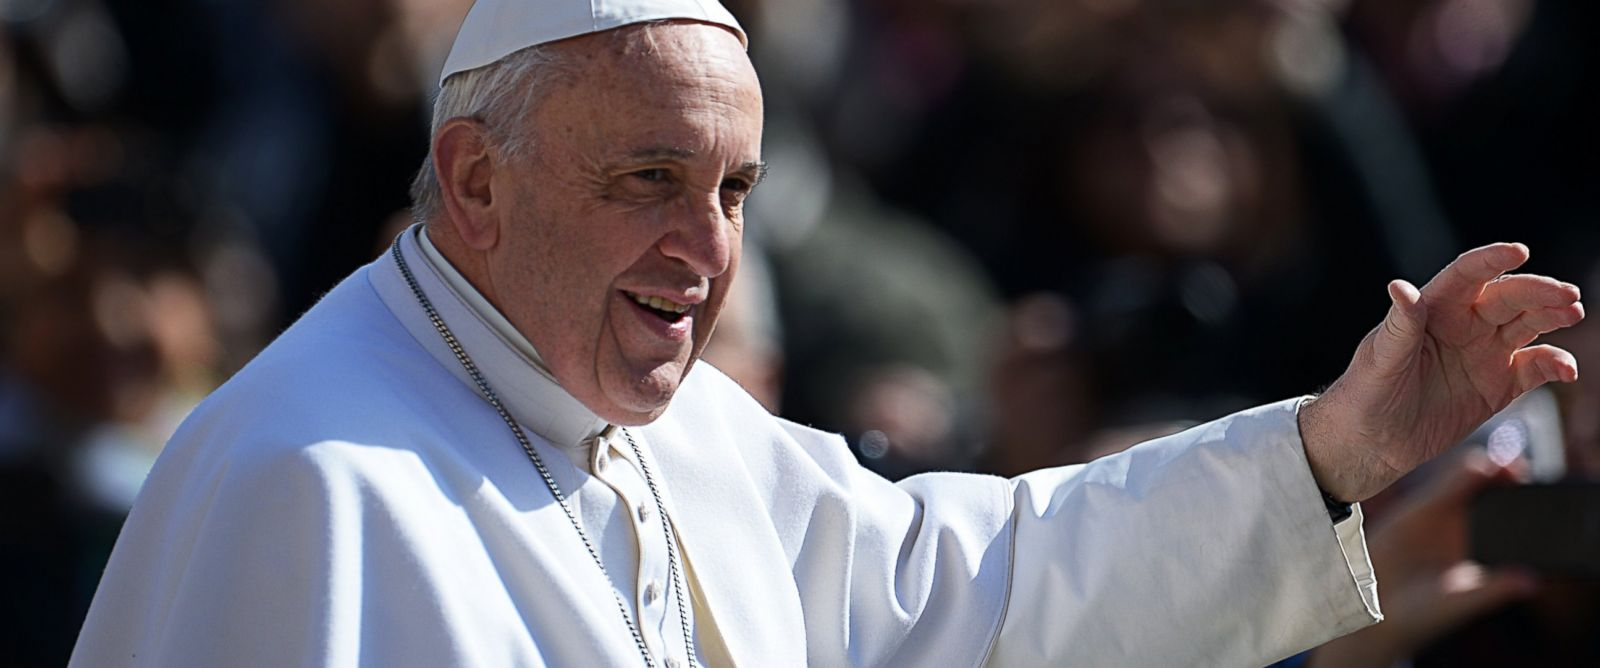 PHOTO: Pope Francis is pictured in St. Peters Square at the Vatican on March 18, 2015.